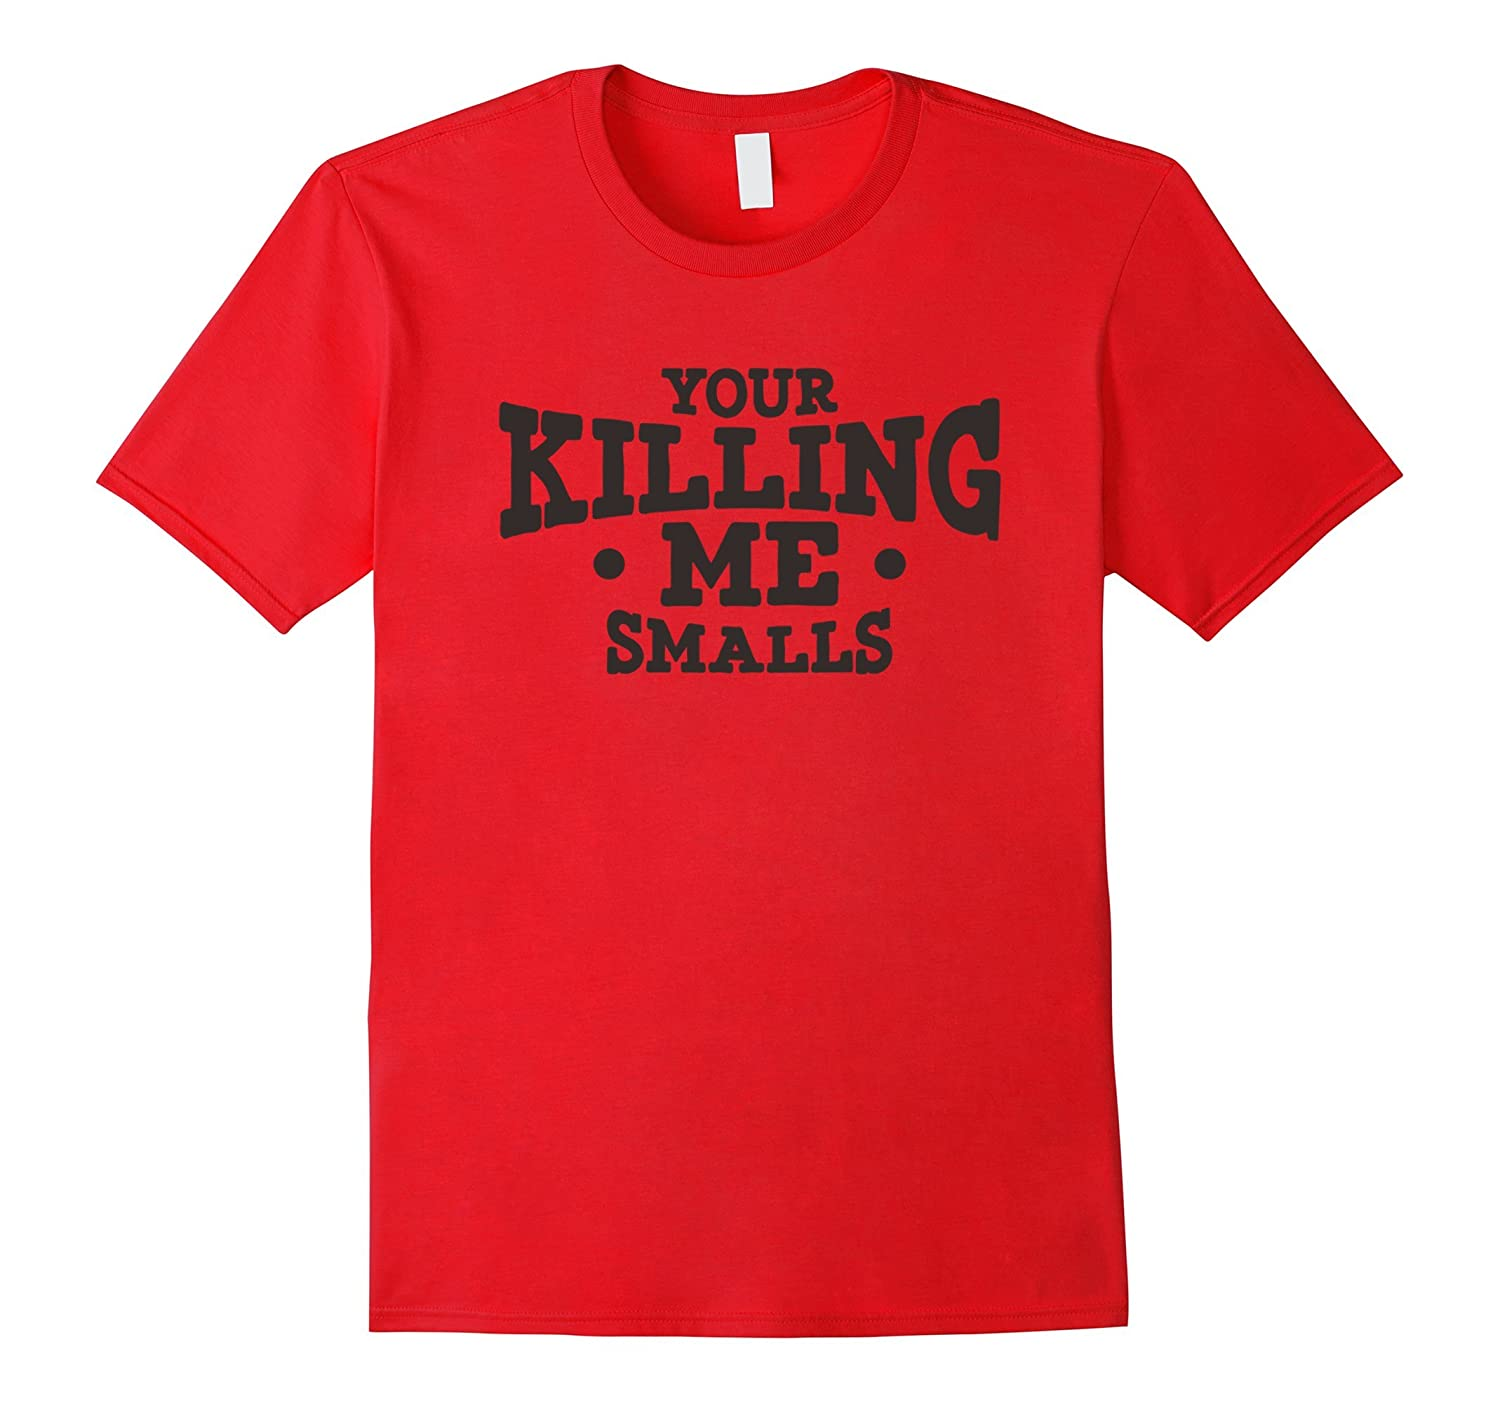 Your Killing Me Smalls- t-shirt For Men and Women-TH